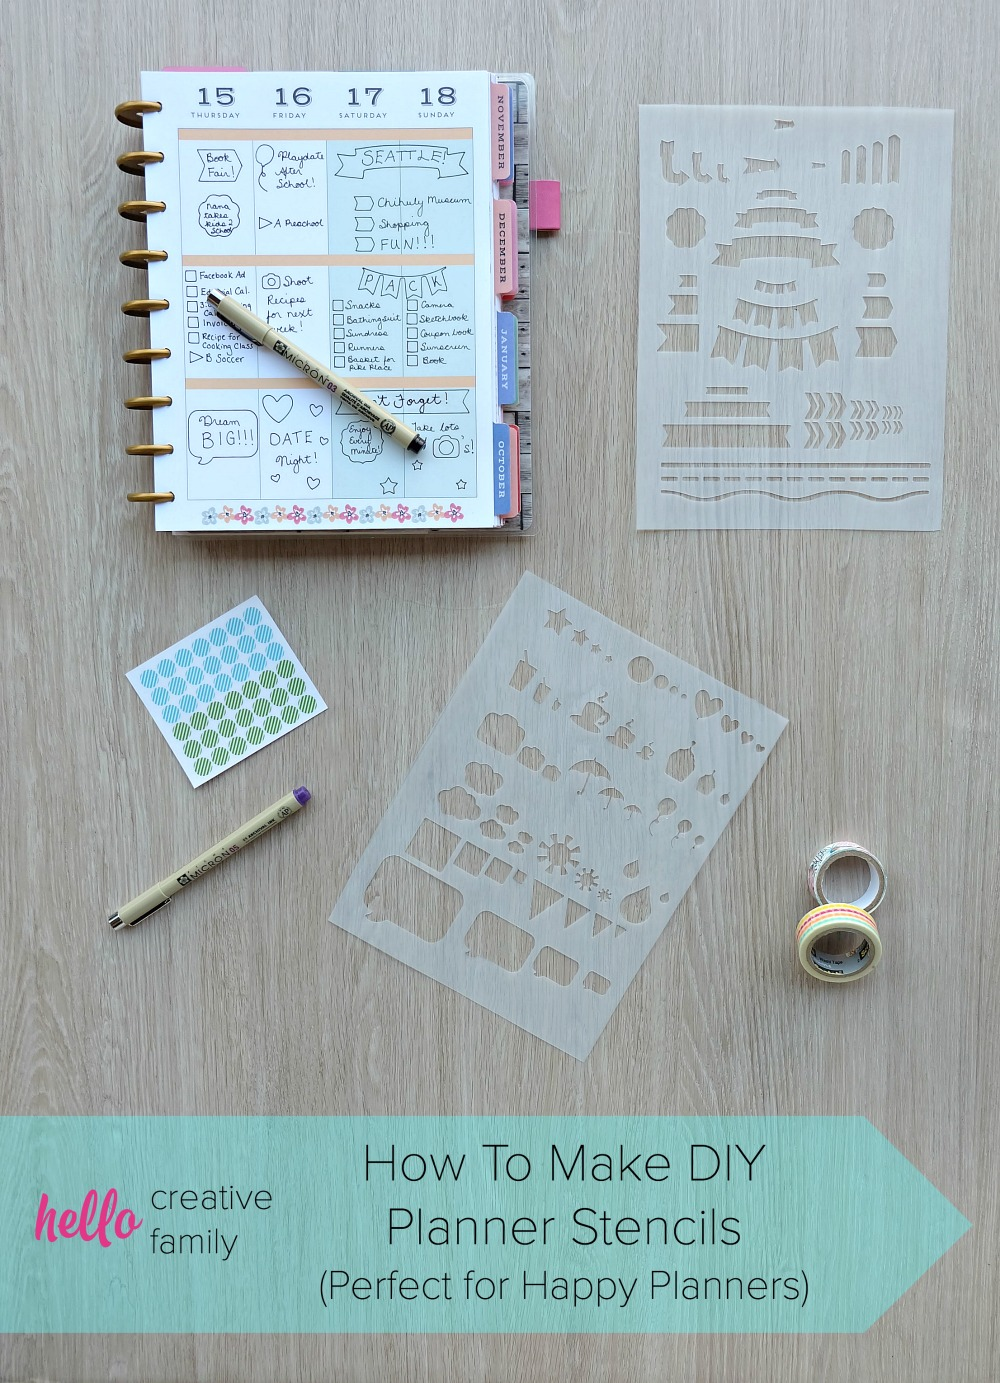 How to make diy planner stencils perfect for happy for Create planner online